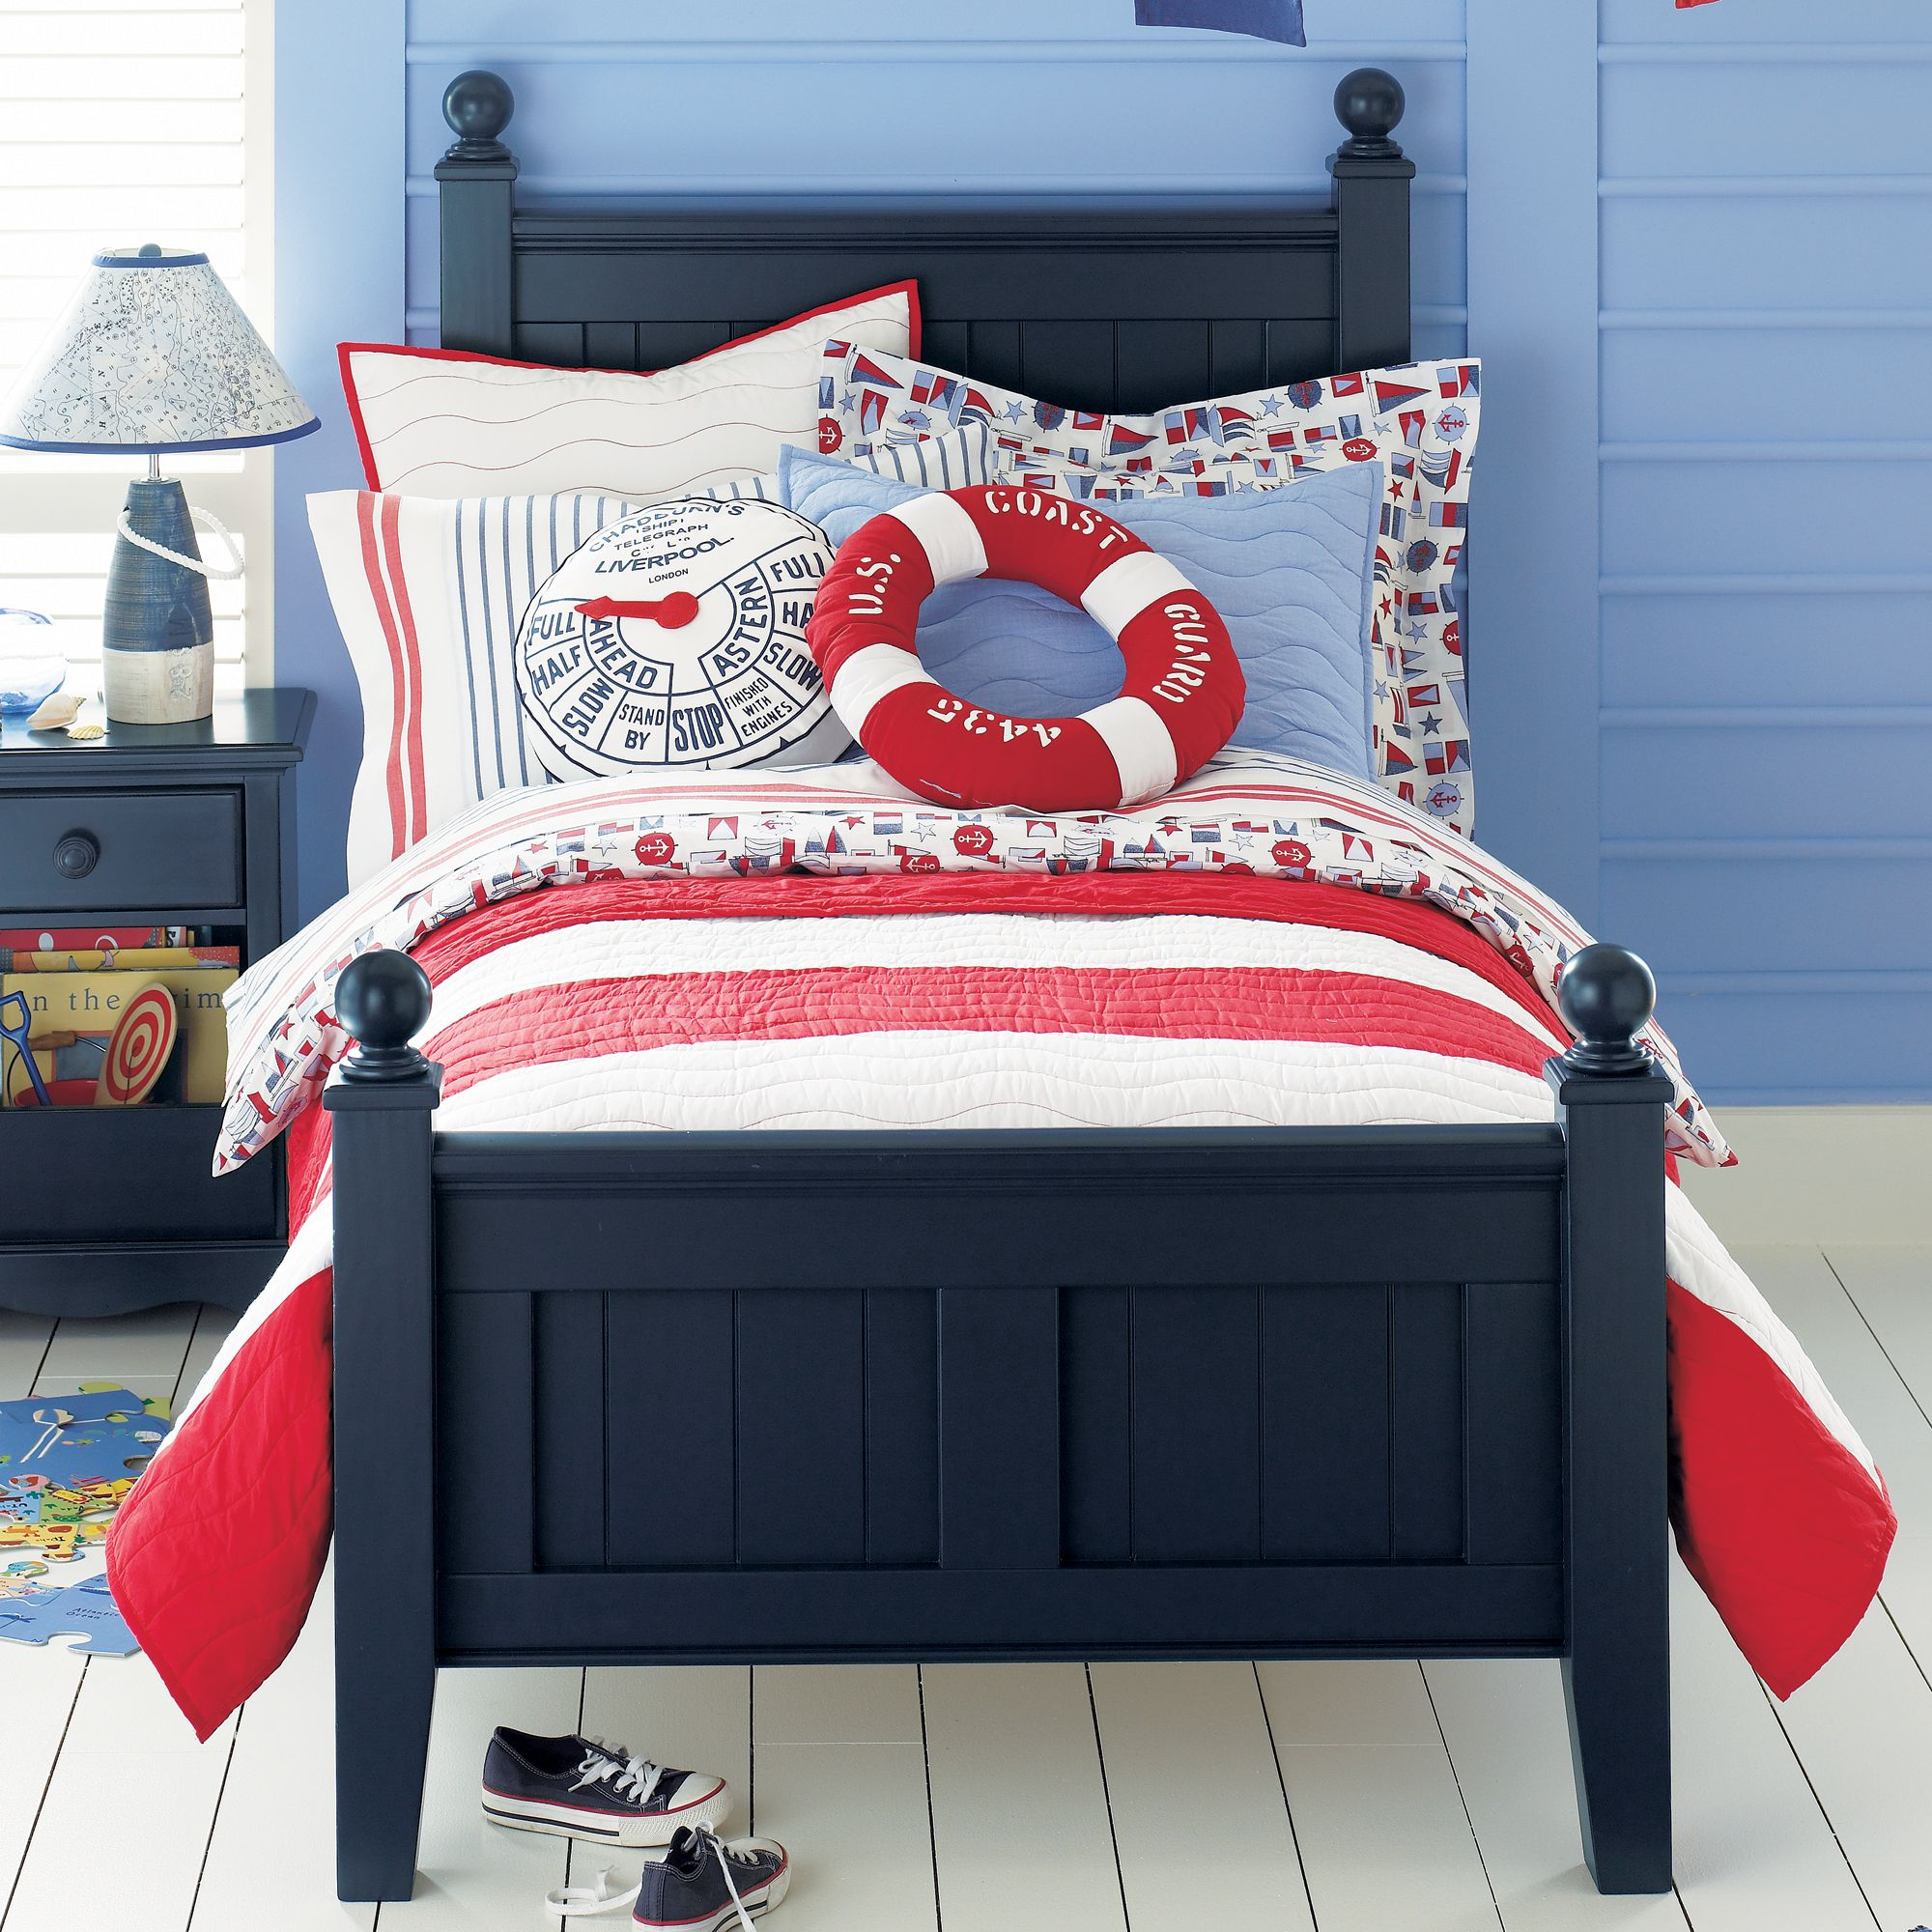 showy-style-of-nautical-theme-rooms